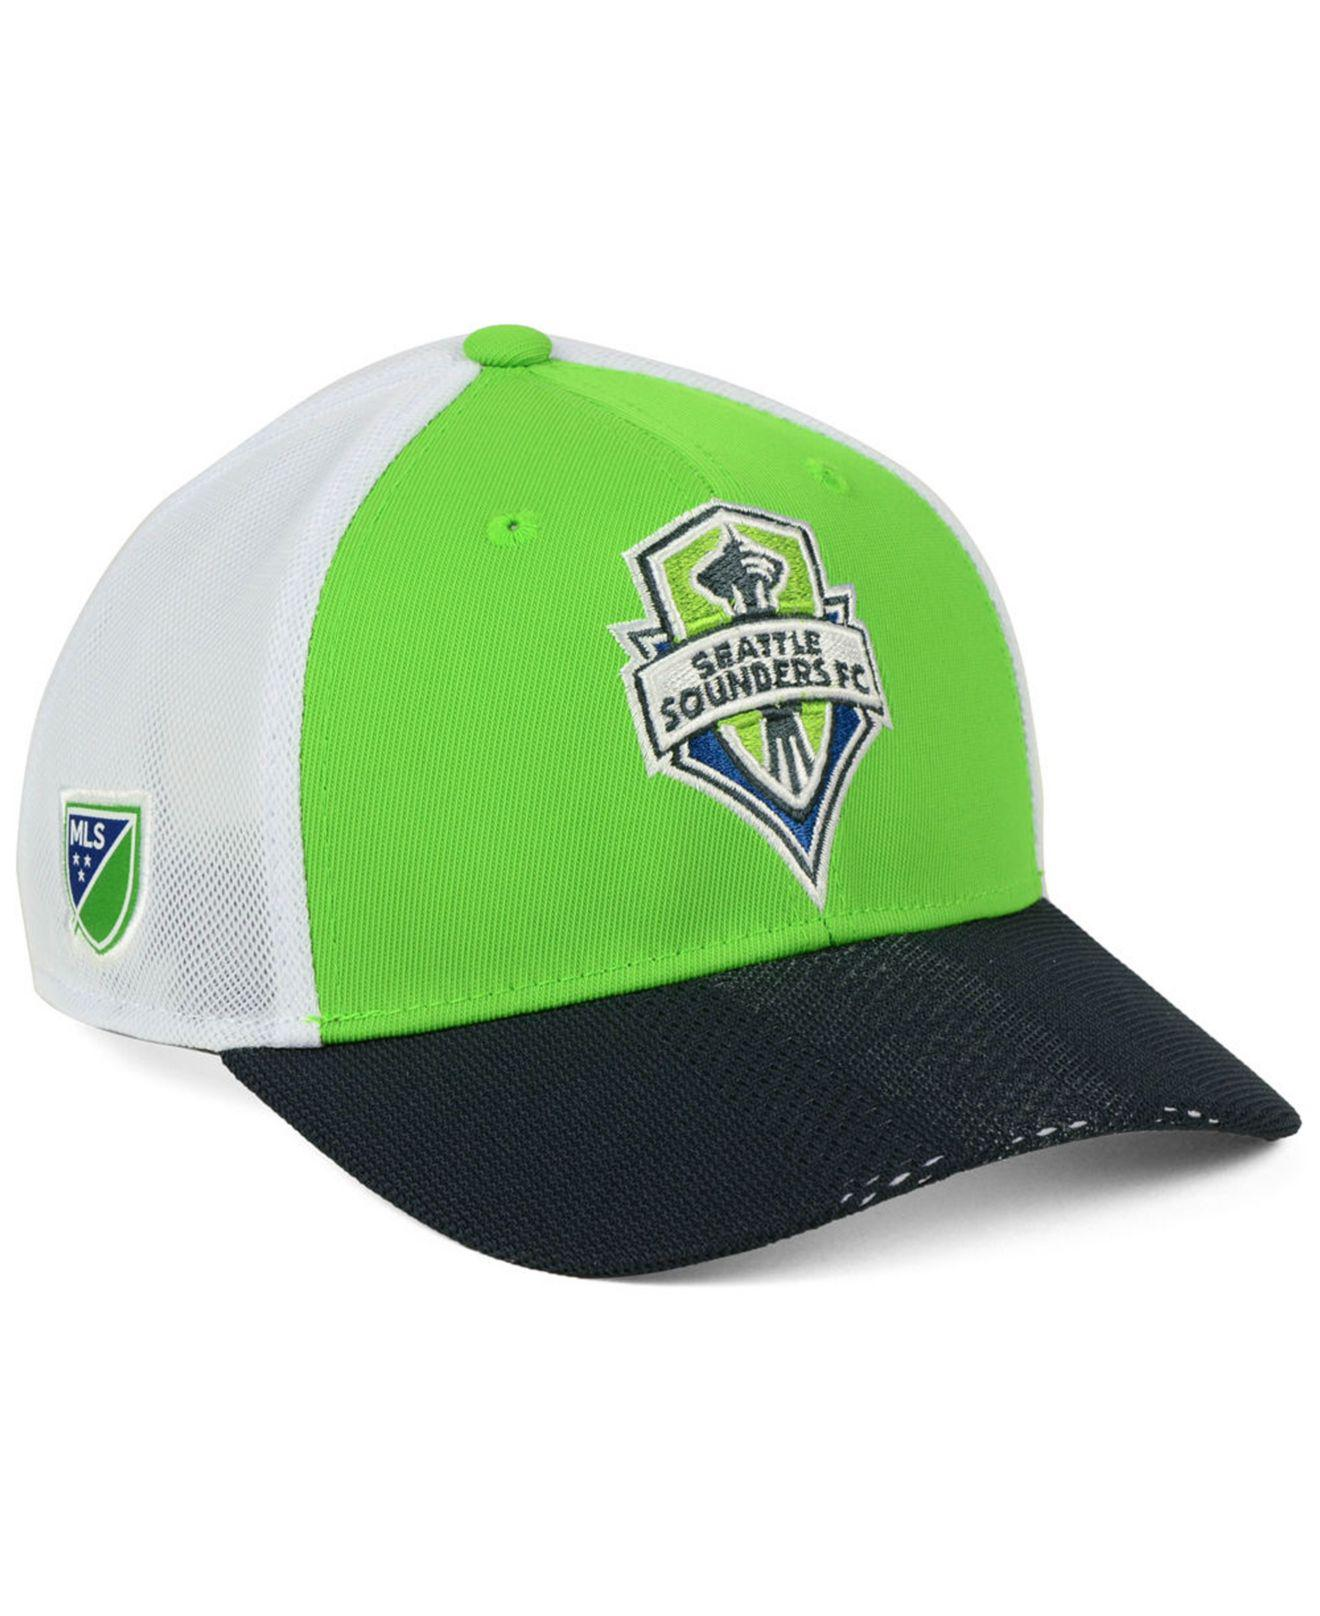 1c6725b6b0b Lyst - adidas Seattle Sounders Fc Authentic Mesh Adjustable Cap in ...